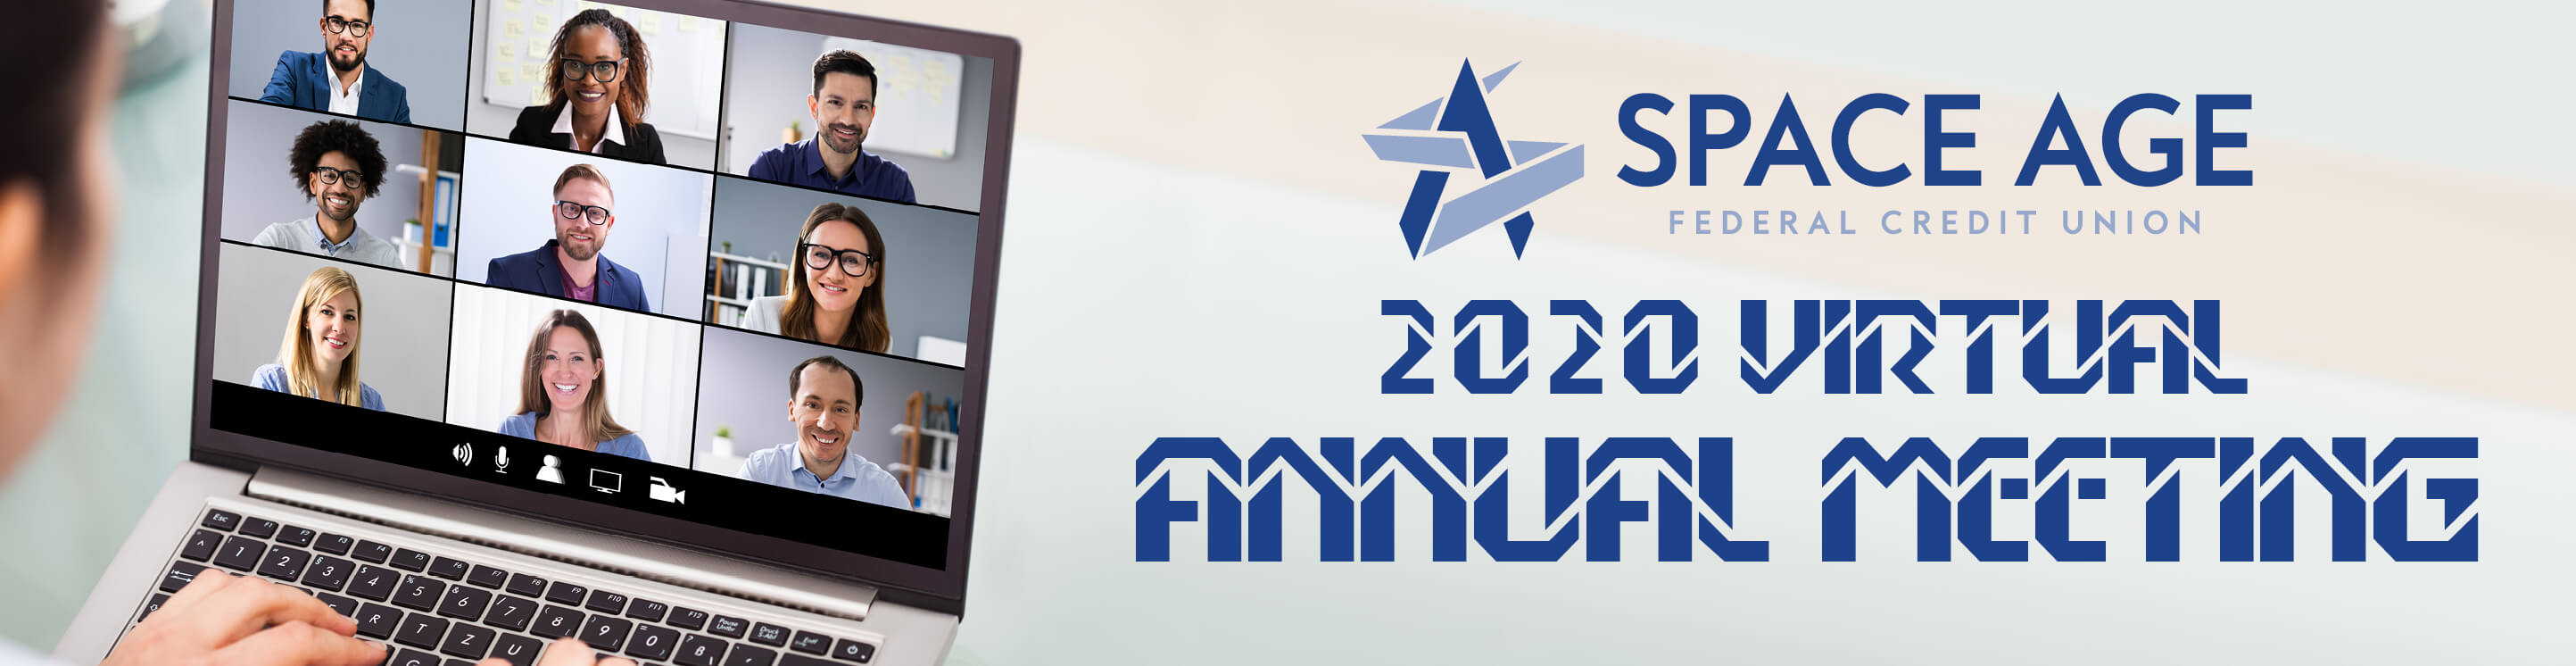 We are doing our annual meeting Virtually on August 12, 2020 at 2:00 PM